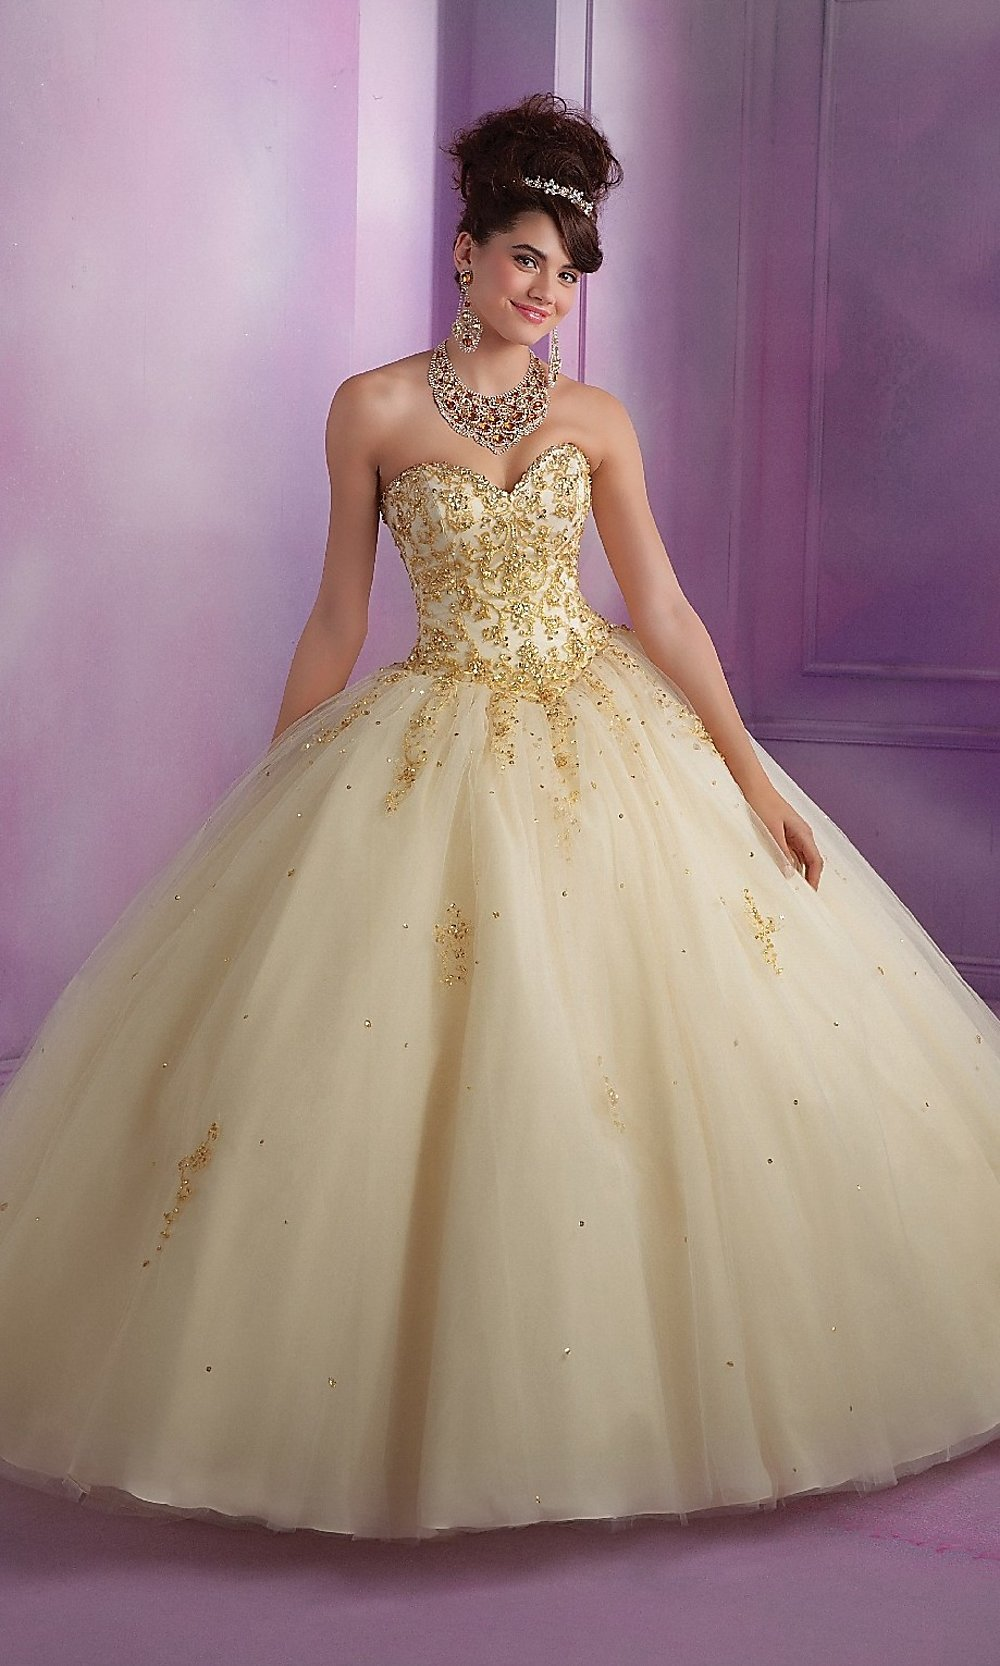 Embroidered Strapless Quinceanera Dress by